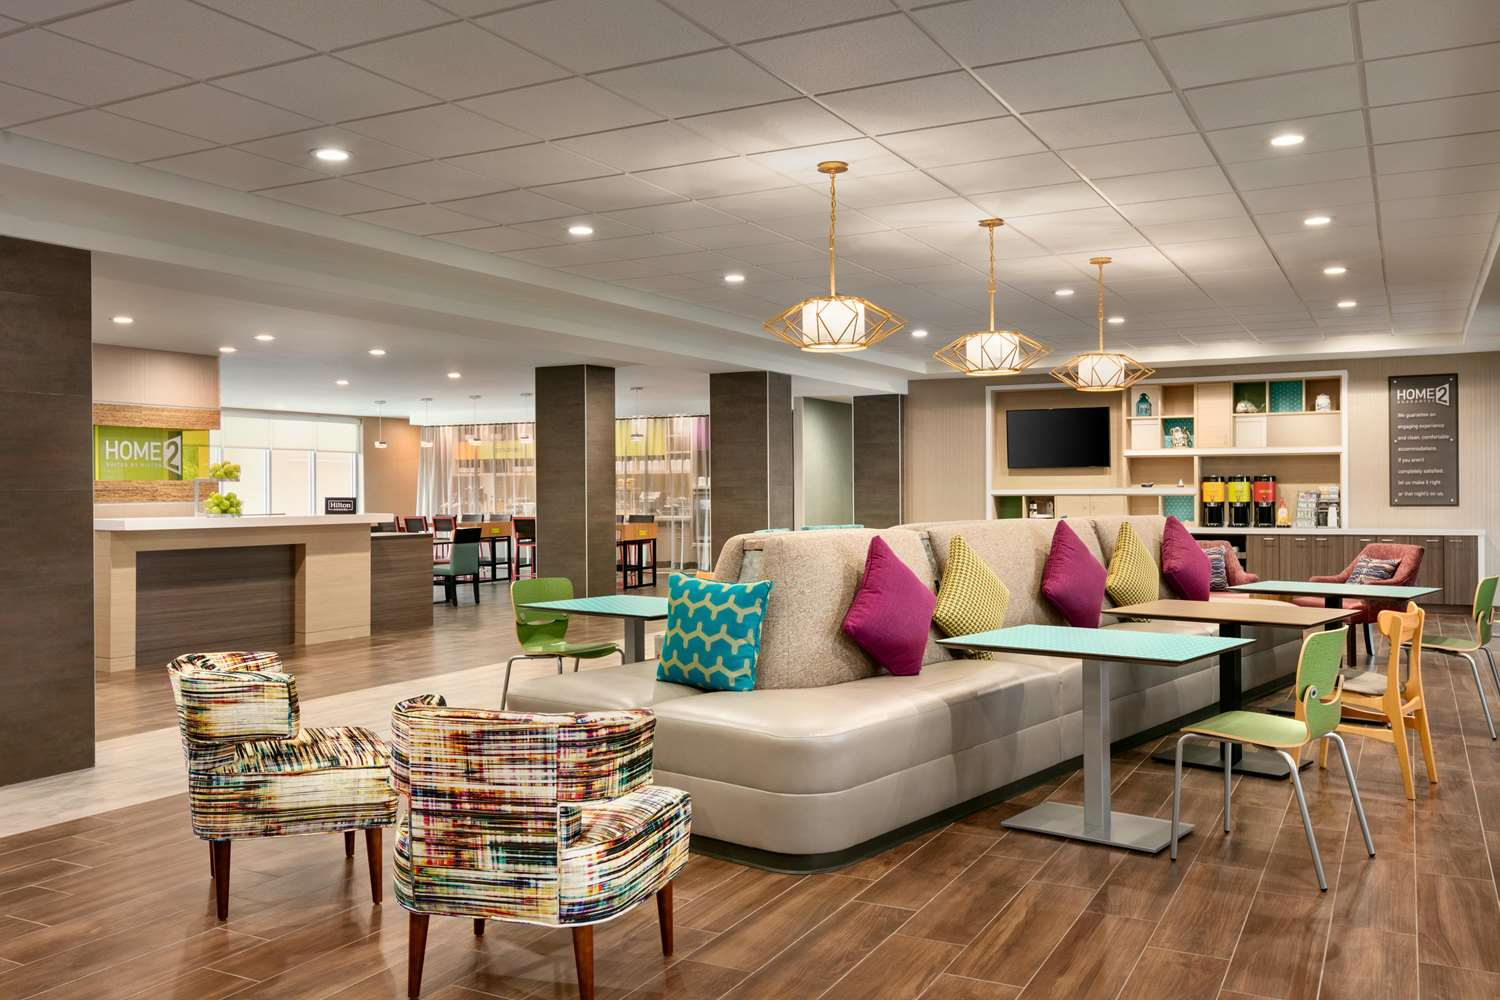 Lobby - Home2 Suites by Hilton Brandon